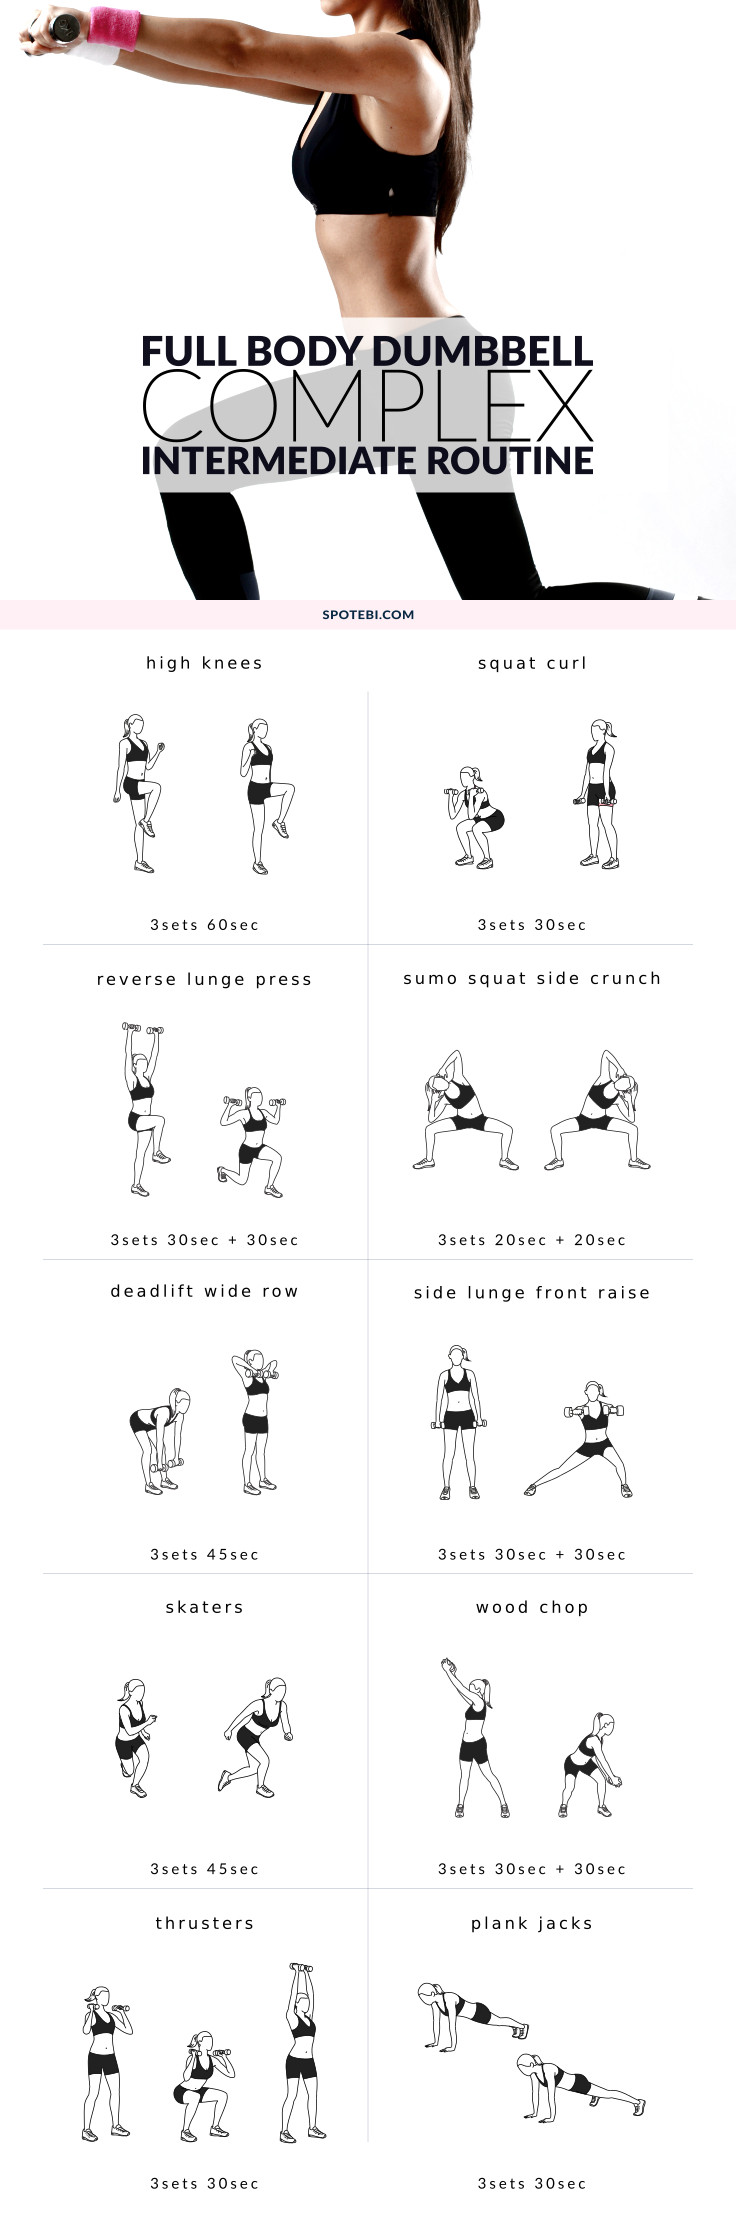 Maximize Weight Loss And Jump Start Your Metabolism With This Full Body Intermediate Dumbbell Complex